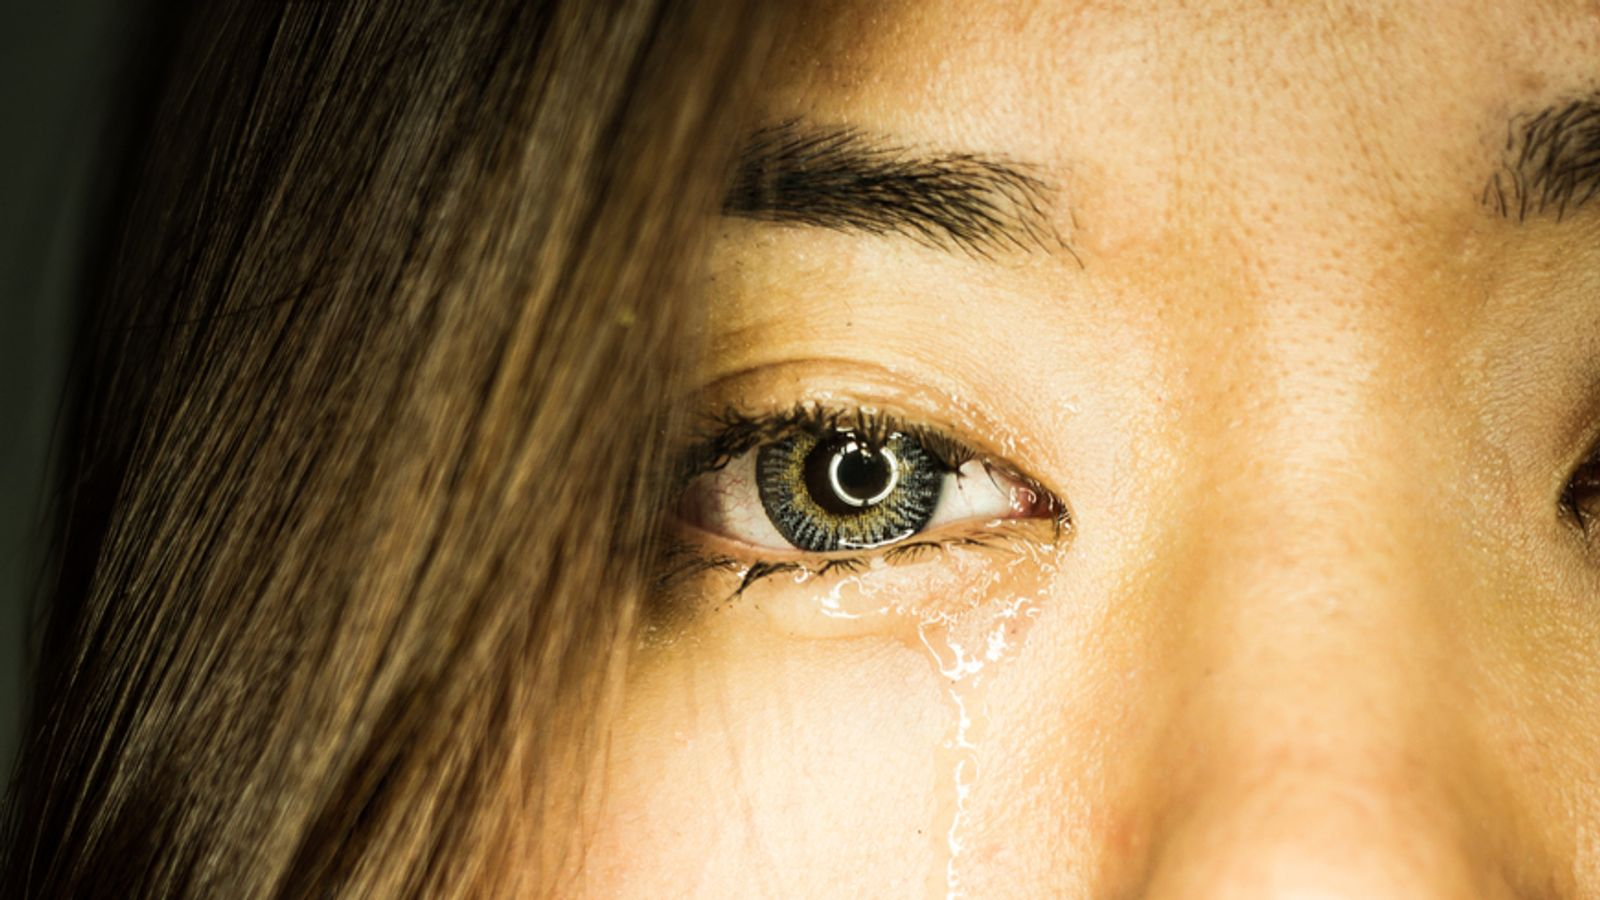 Tears contain a natural painkiller, which reduces pain and improves your mood